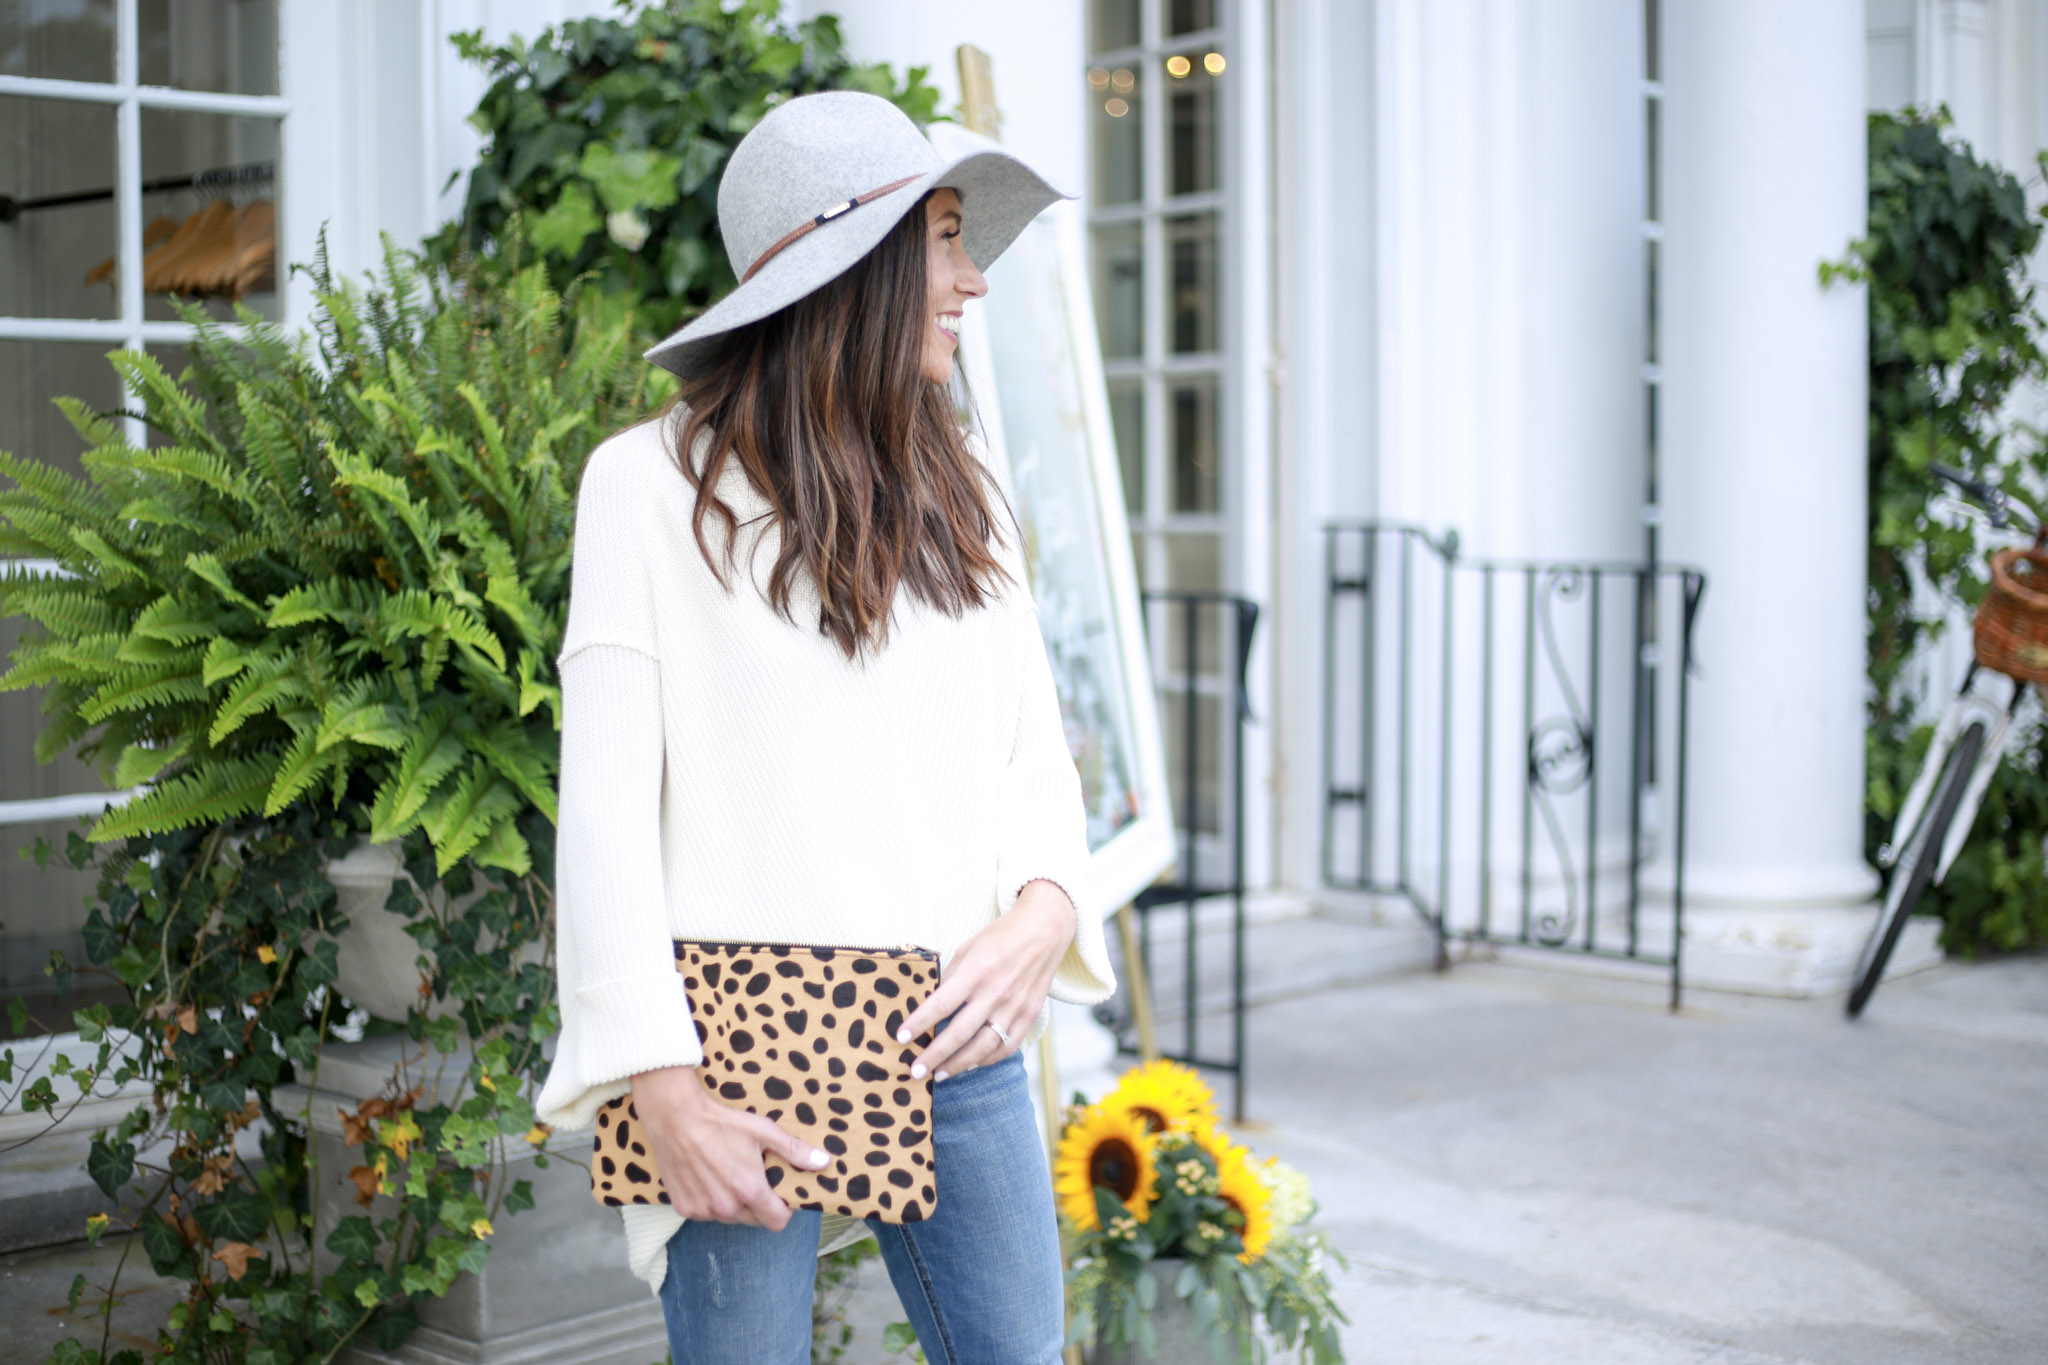 Building your capsule wardrobe on Livinglifepretty.com - The Knit Sweater by Boston fashion blogger Living Life Pretty